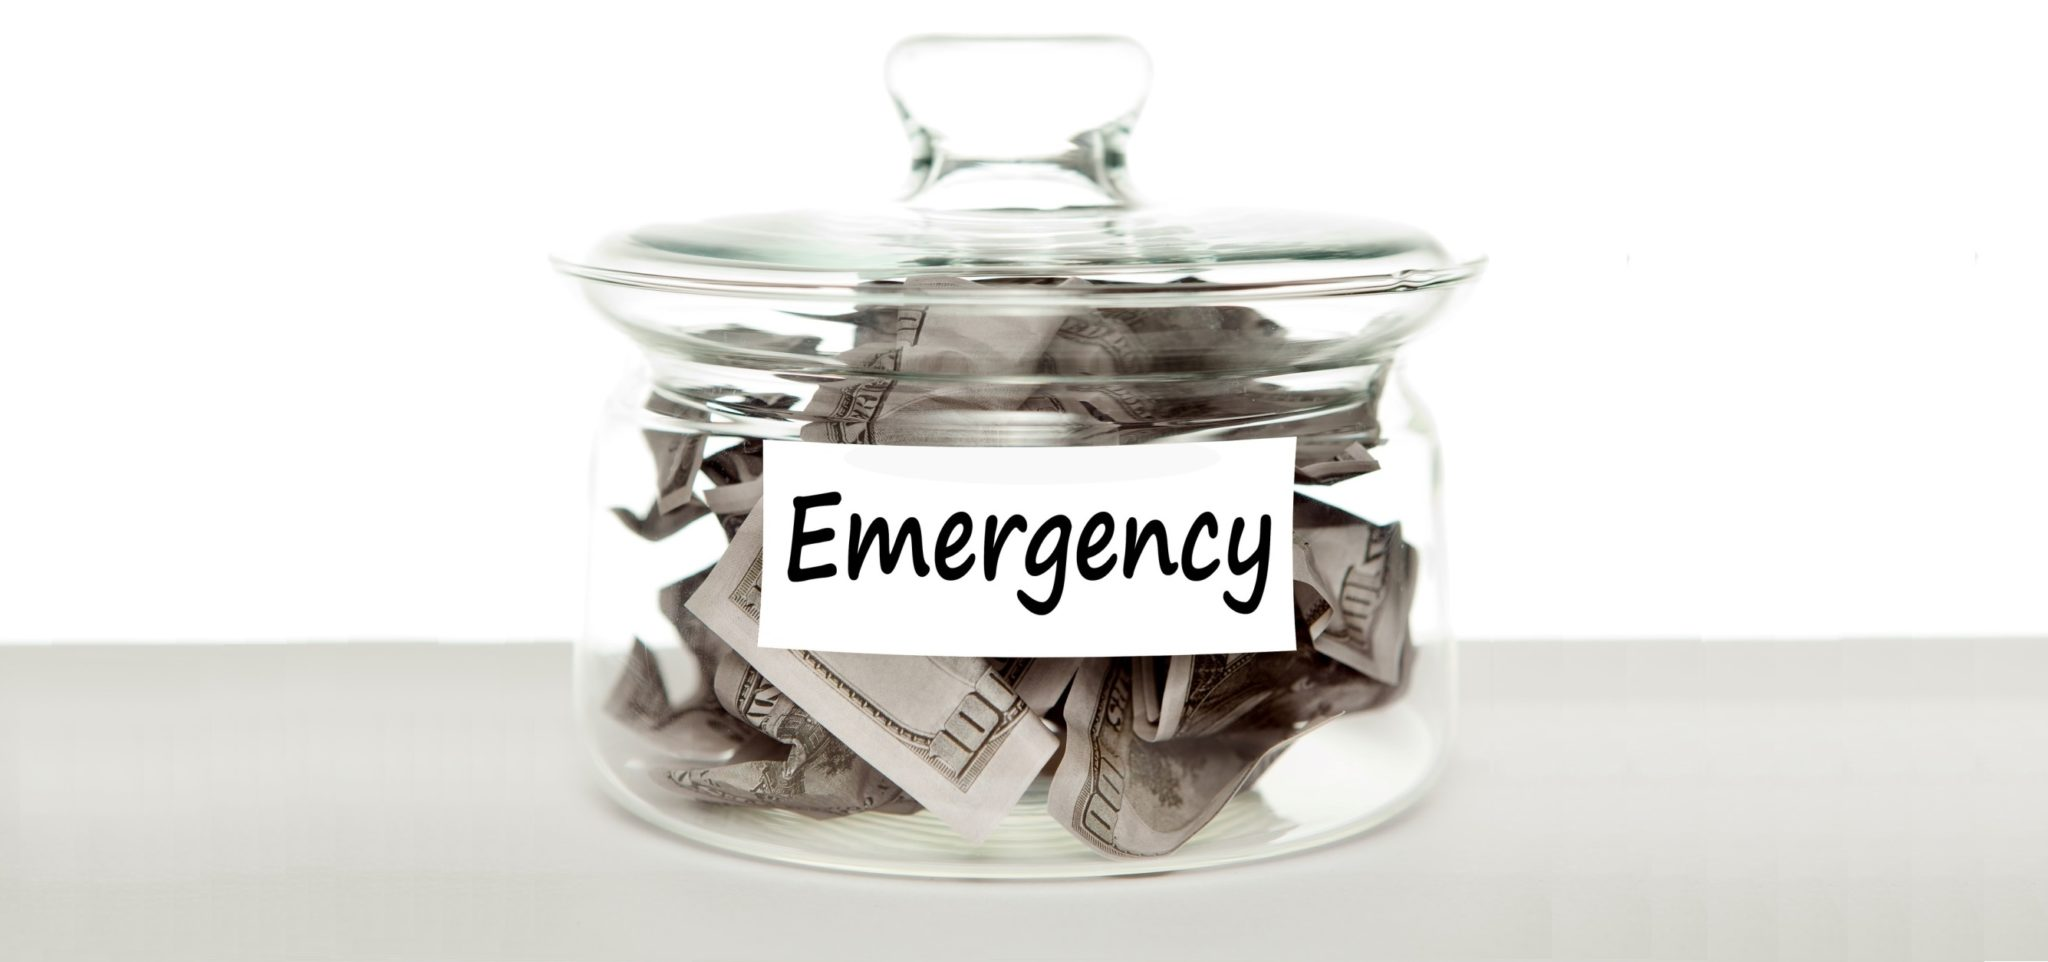 How To Build And Start An Emergency Fund [2017 Guide]